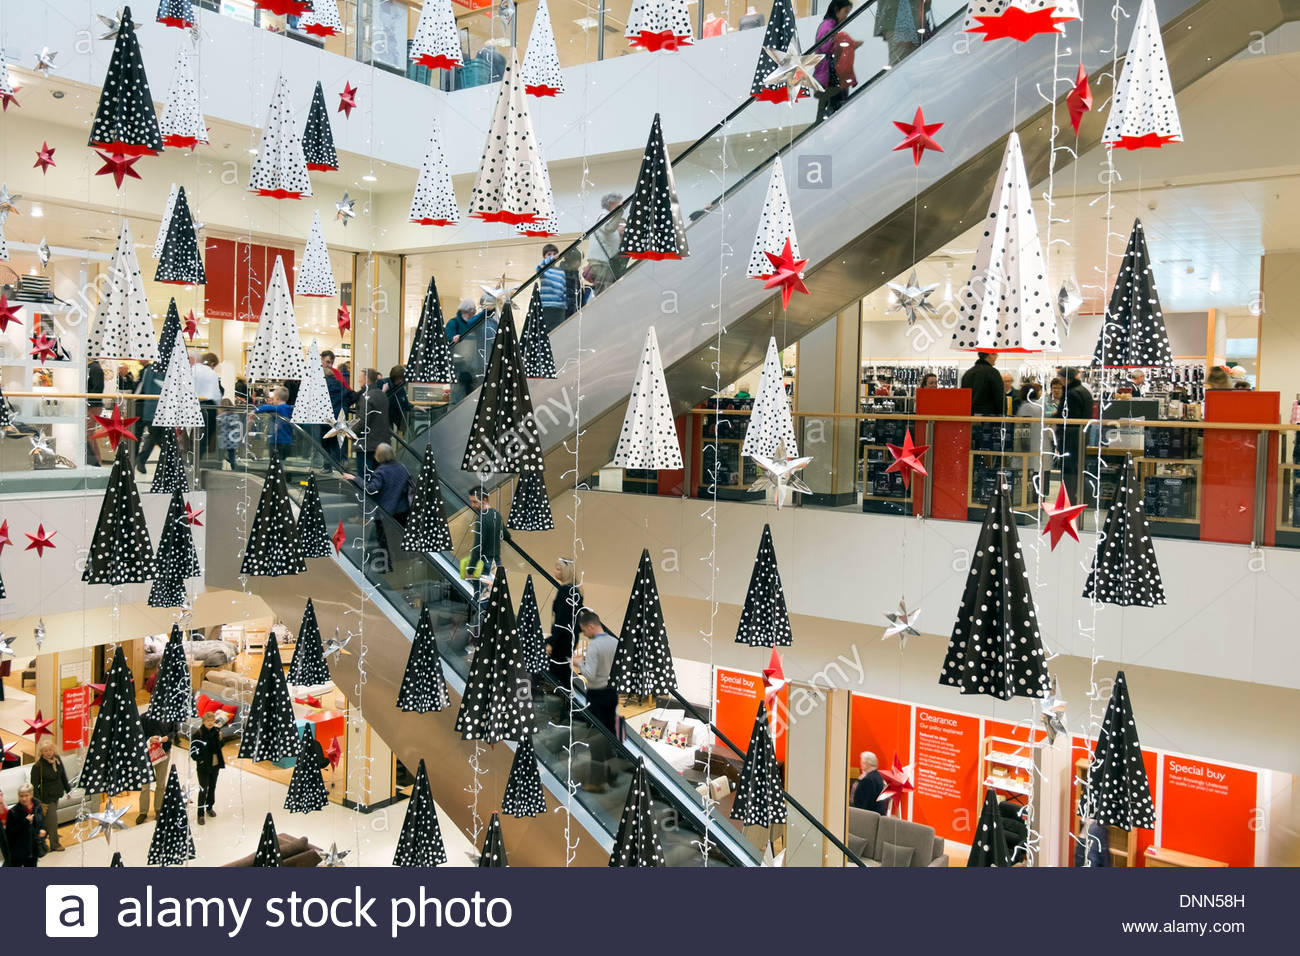 John Lewis store interior and Christmas decorations Stock Photo